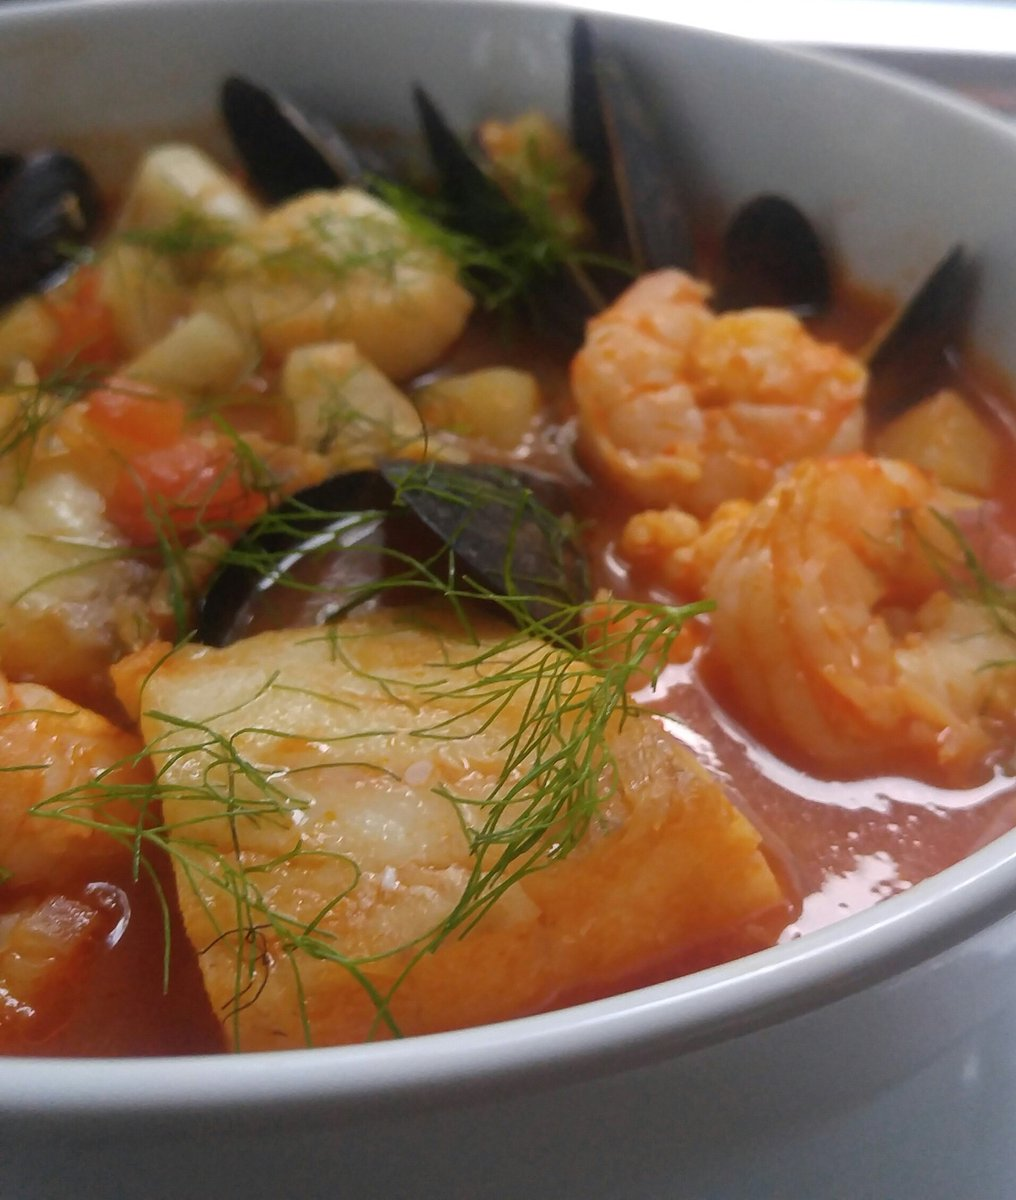 from scratch #french #bouillabaisse #homecook #cookingchannel #foodnetwork #chicago #chef #masterchef #seafood #shrimp #stew #soup #fish<br>http://pic.twitter.com/no6IvZMHVc